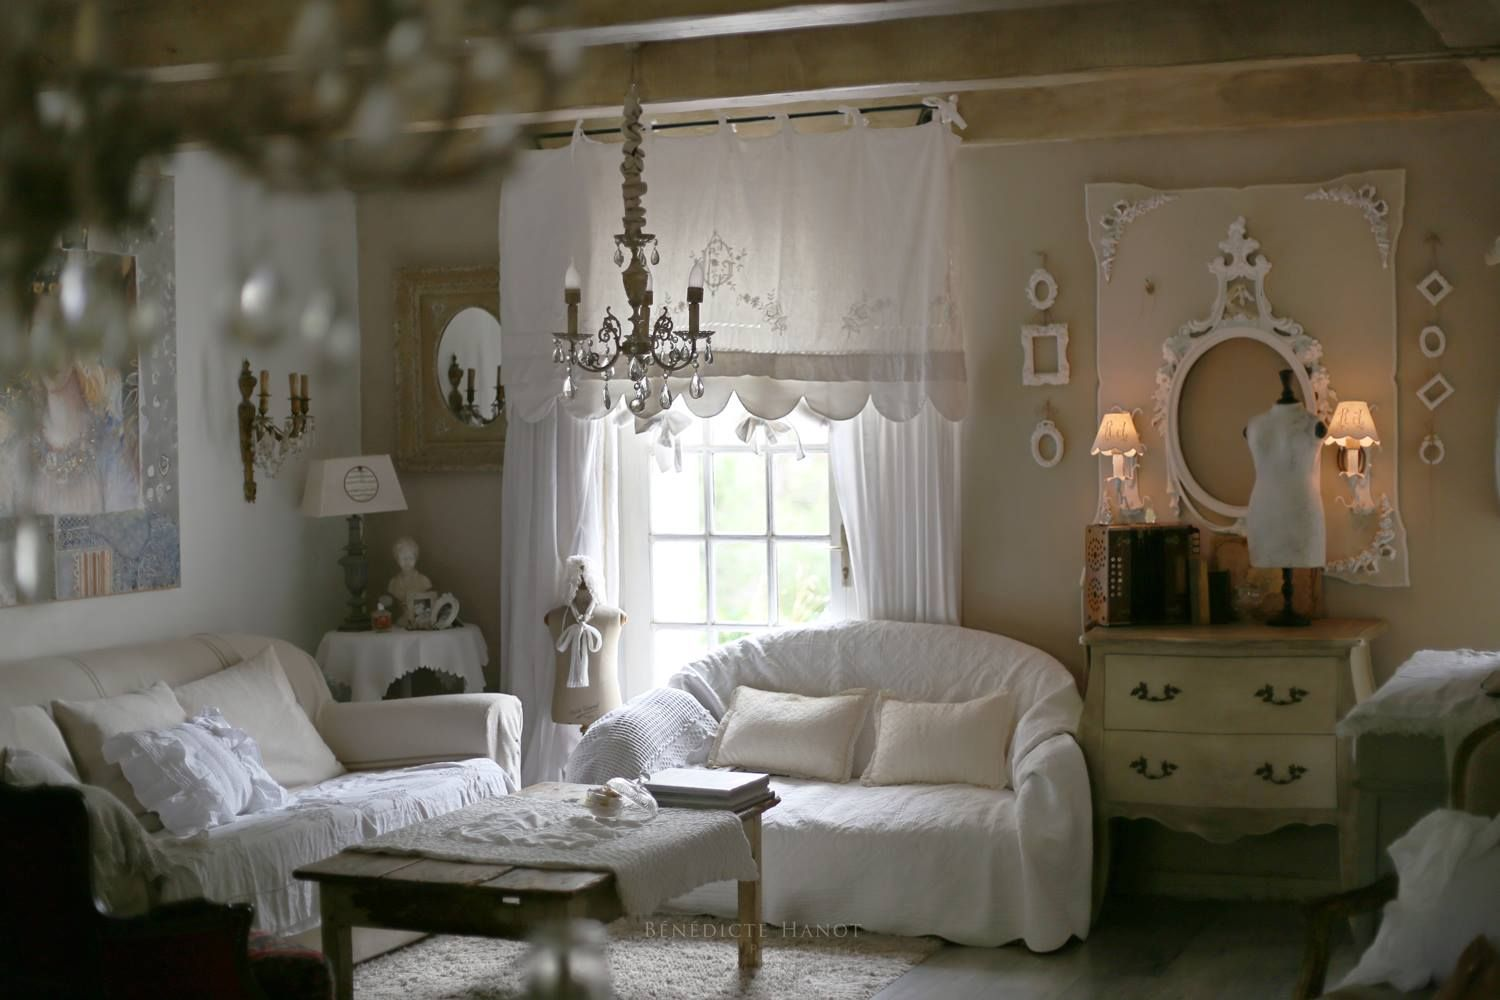 le shabby chic shabby romantic d coration romantique d coration int rieure maison. Black Bedroom Furniture Sets. Home Design Ideas